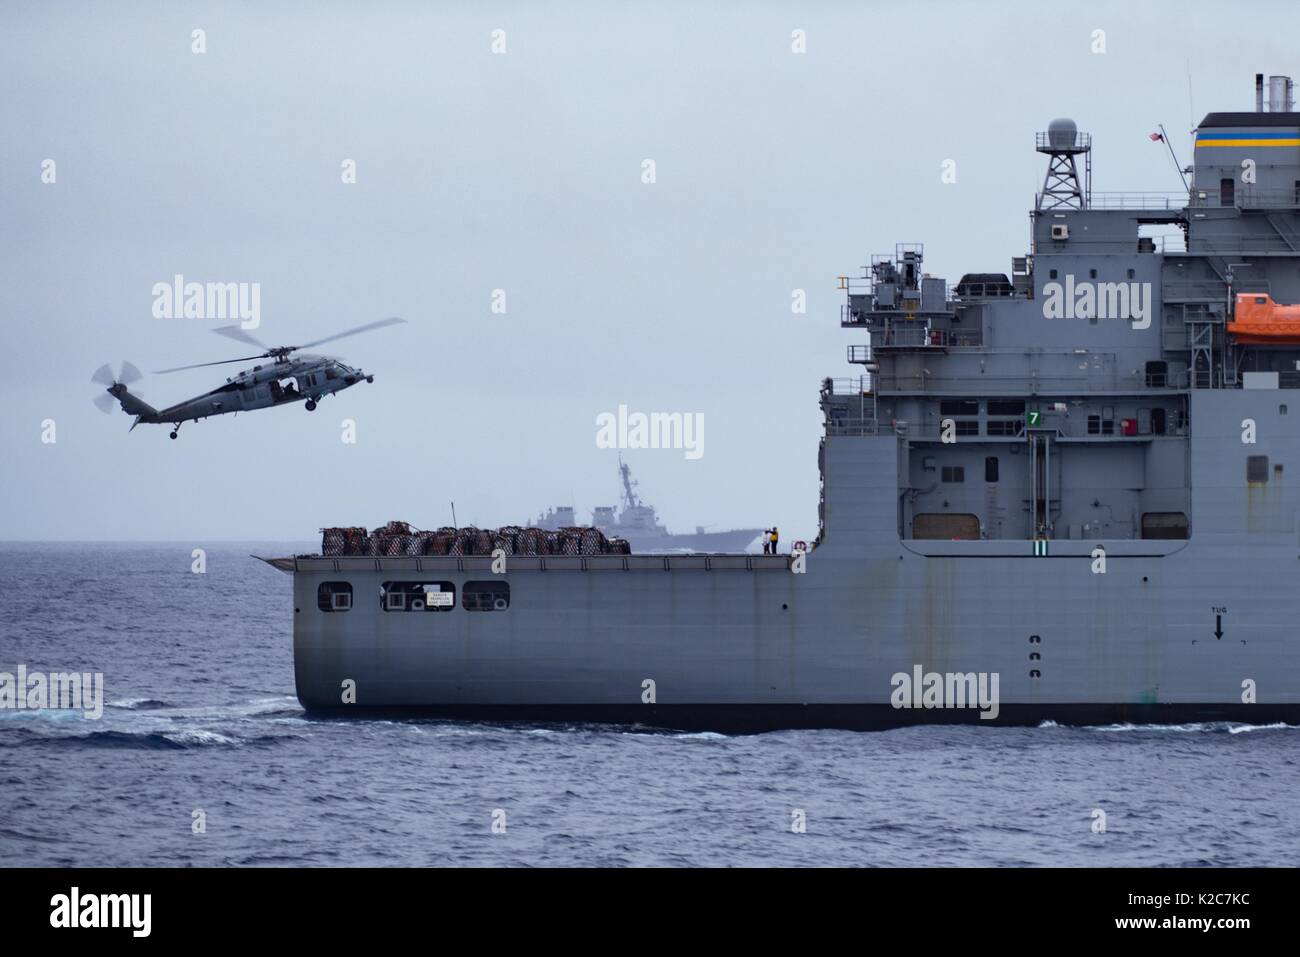 A U.S. Navy MH-60S Seahawk helicopter picks up supplies from the U.S. Navy Lewis and Clark-class dry cargo ammunition ship USNS Matthew Perry August 15, 2017 in the Pacific Ocean. - Stock Image